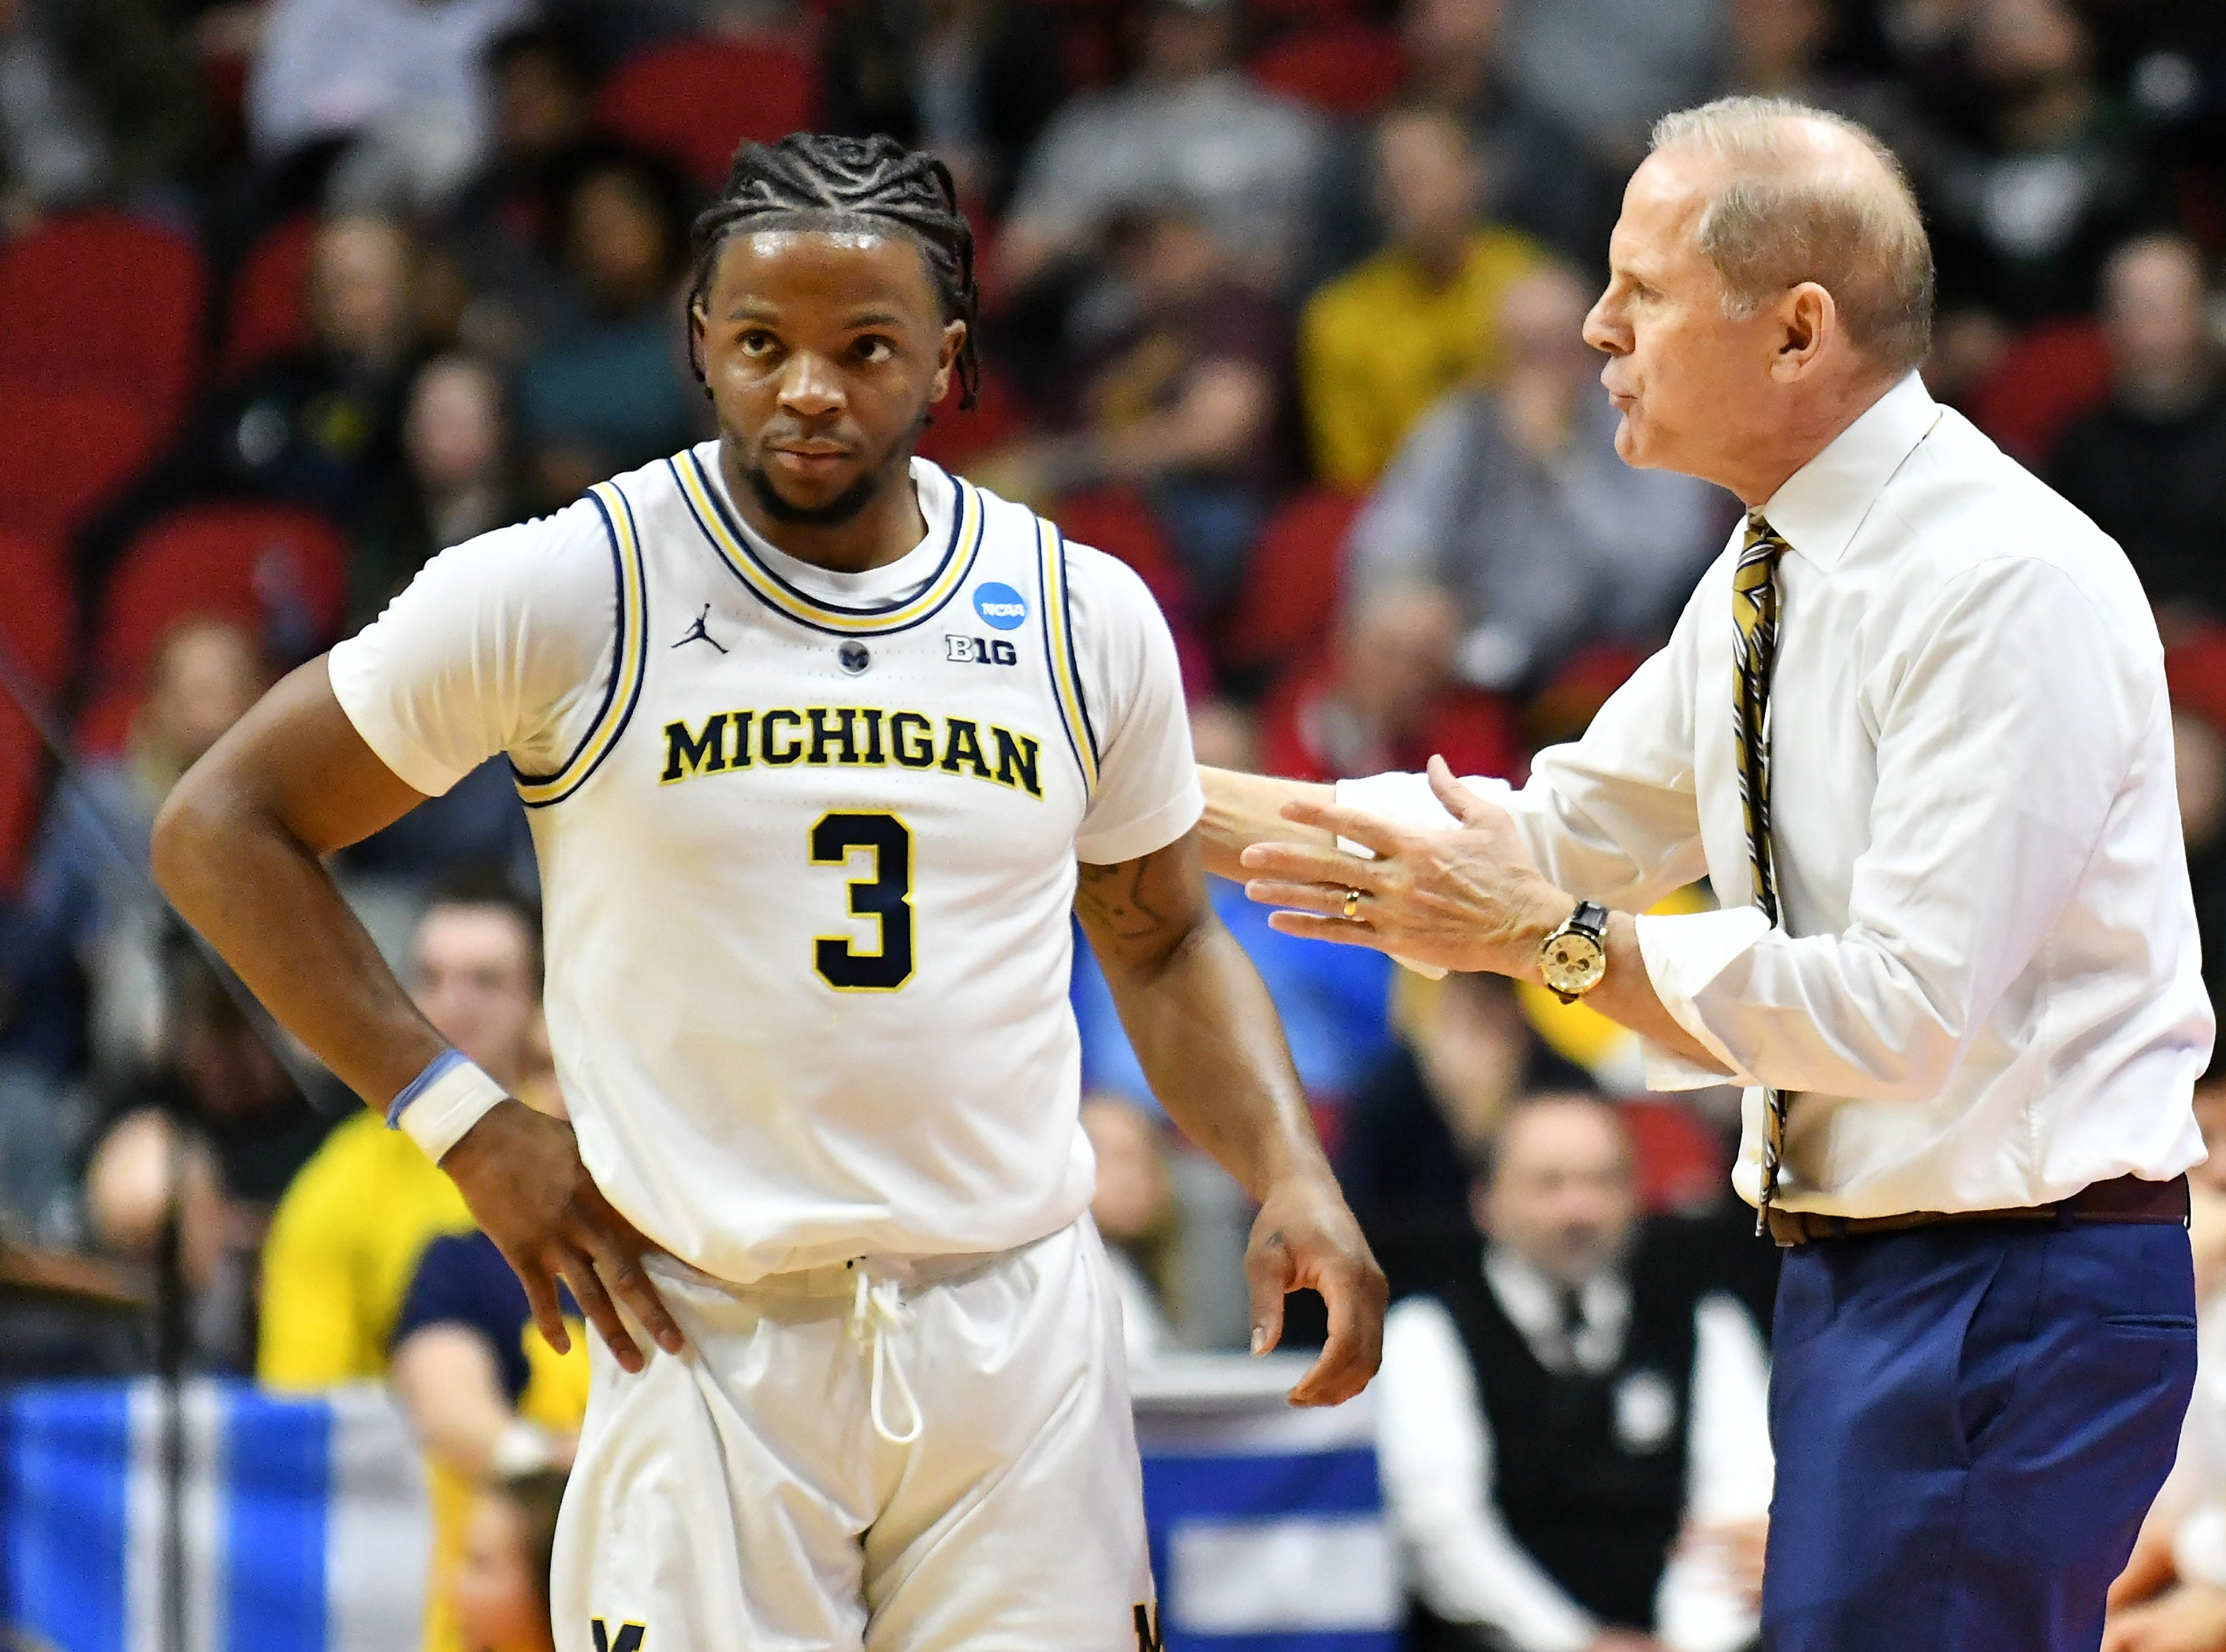 Michigan head coach John Beilein talks with Michigan guard Zavier Simpson (3) in the first half.  Michigan vs Montana for Round 1 of the NCAA Tournament at Wells Fargo Arena in Des Moines, Iowa.